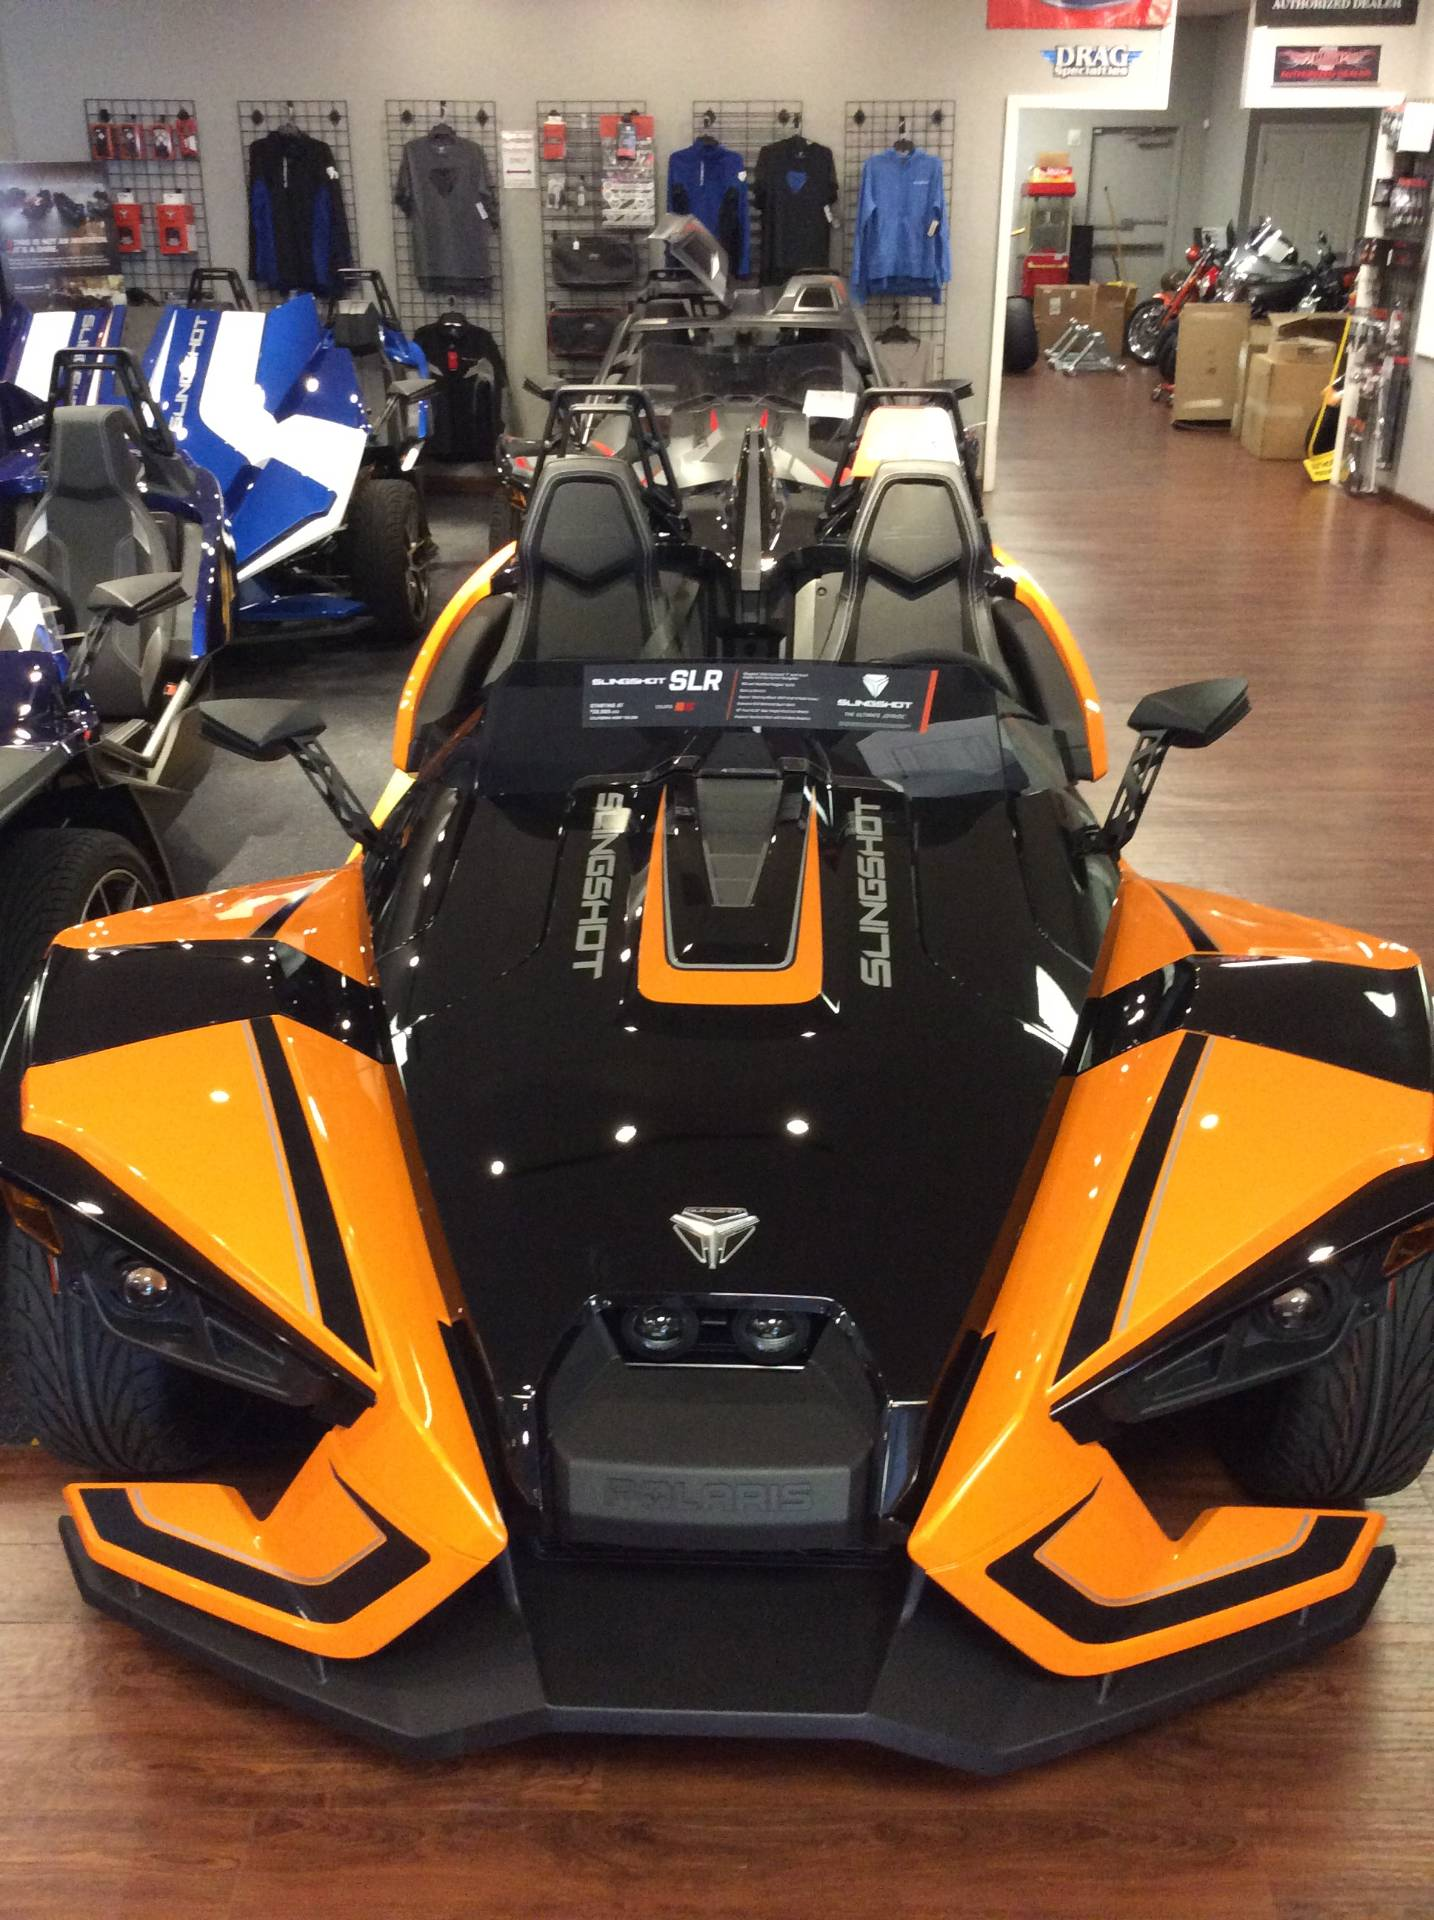 2019 Slingshot Slingshot SLR in Staten Island, New York - Photo 1